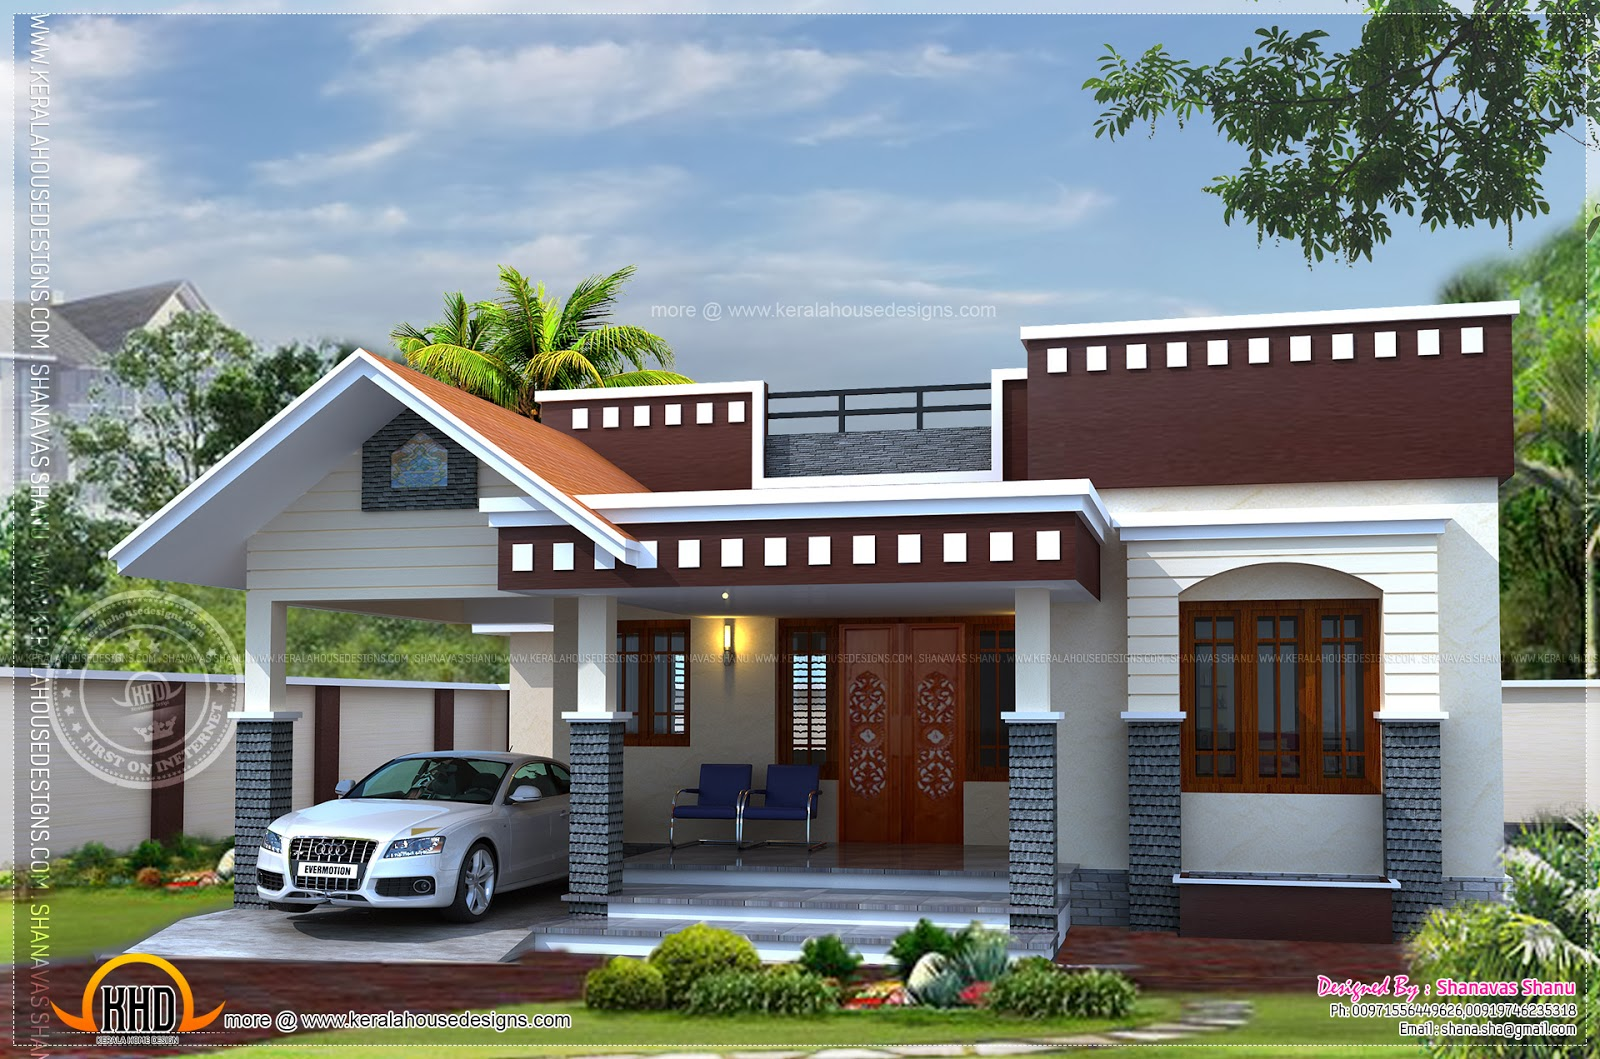 Home plan of small house kerala home design and floor plans for Small house plans in kerala